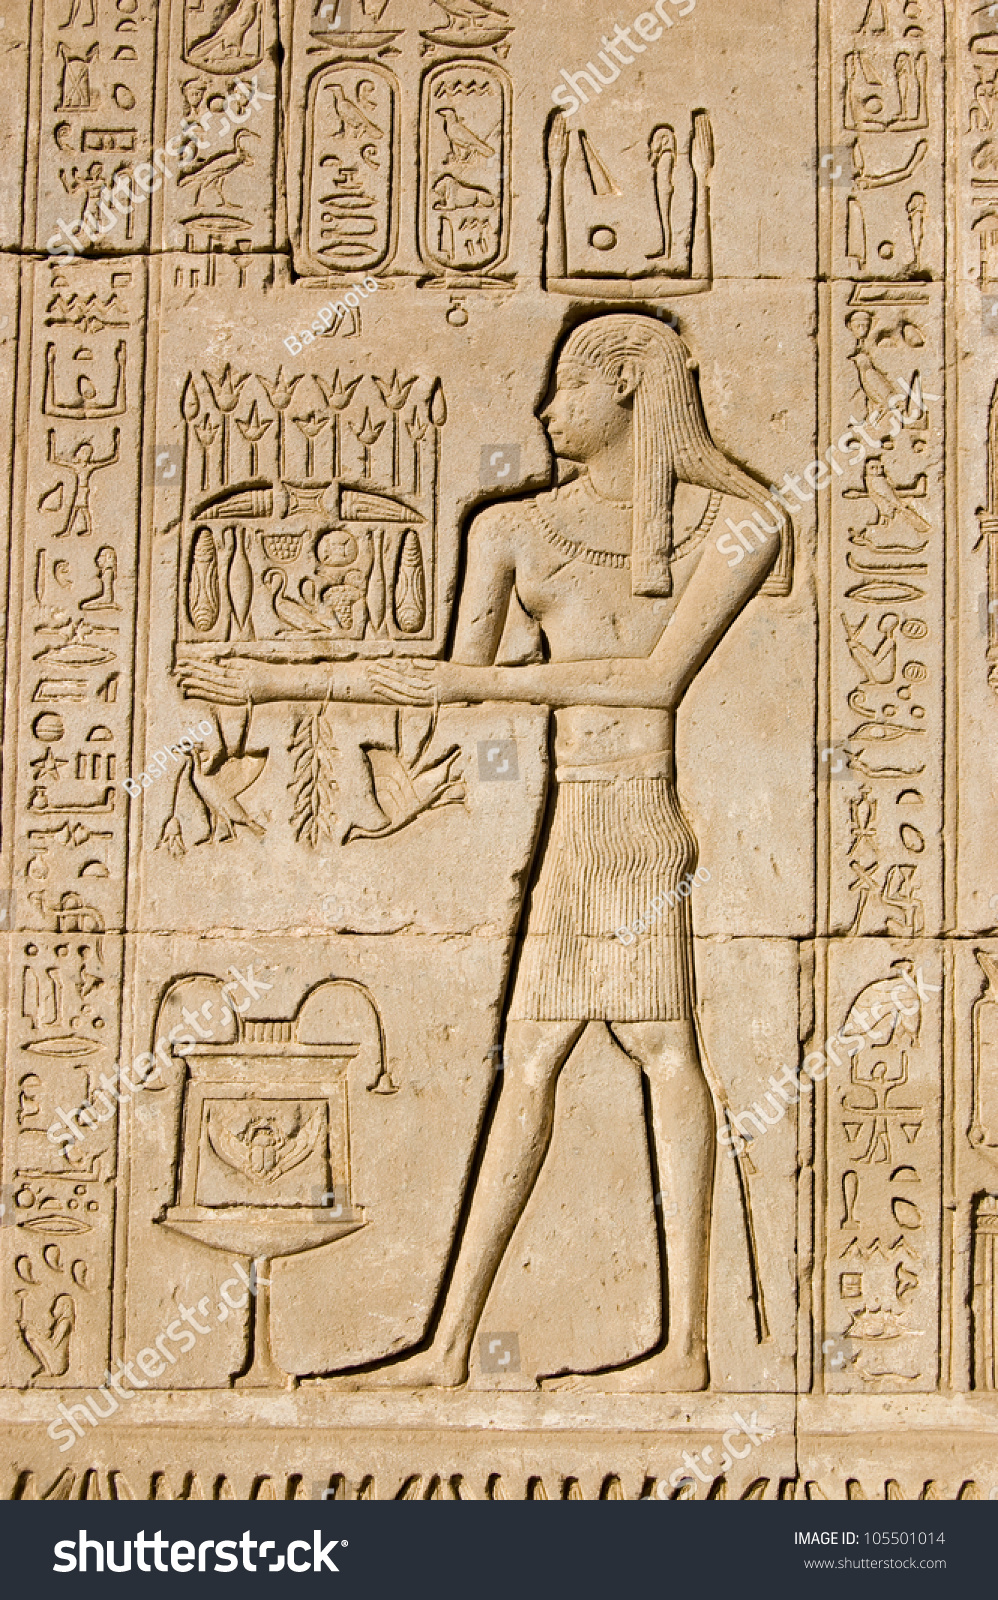 Ancient egyptian bas relief carving of a priest making an